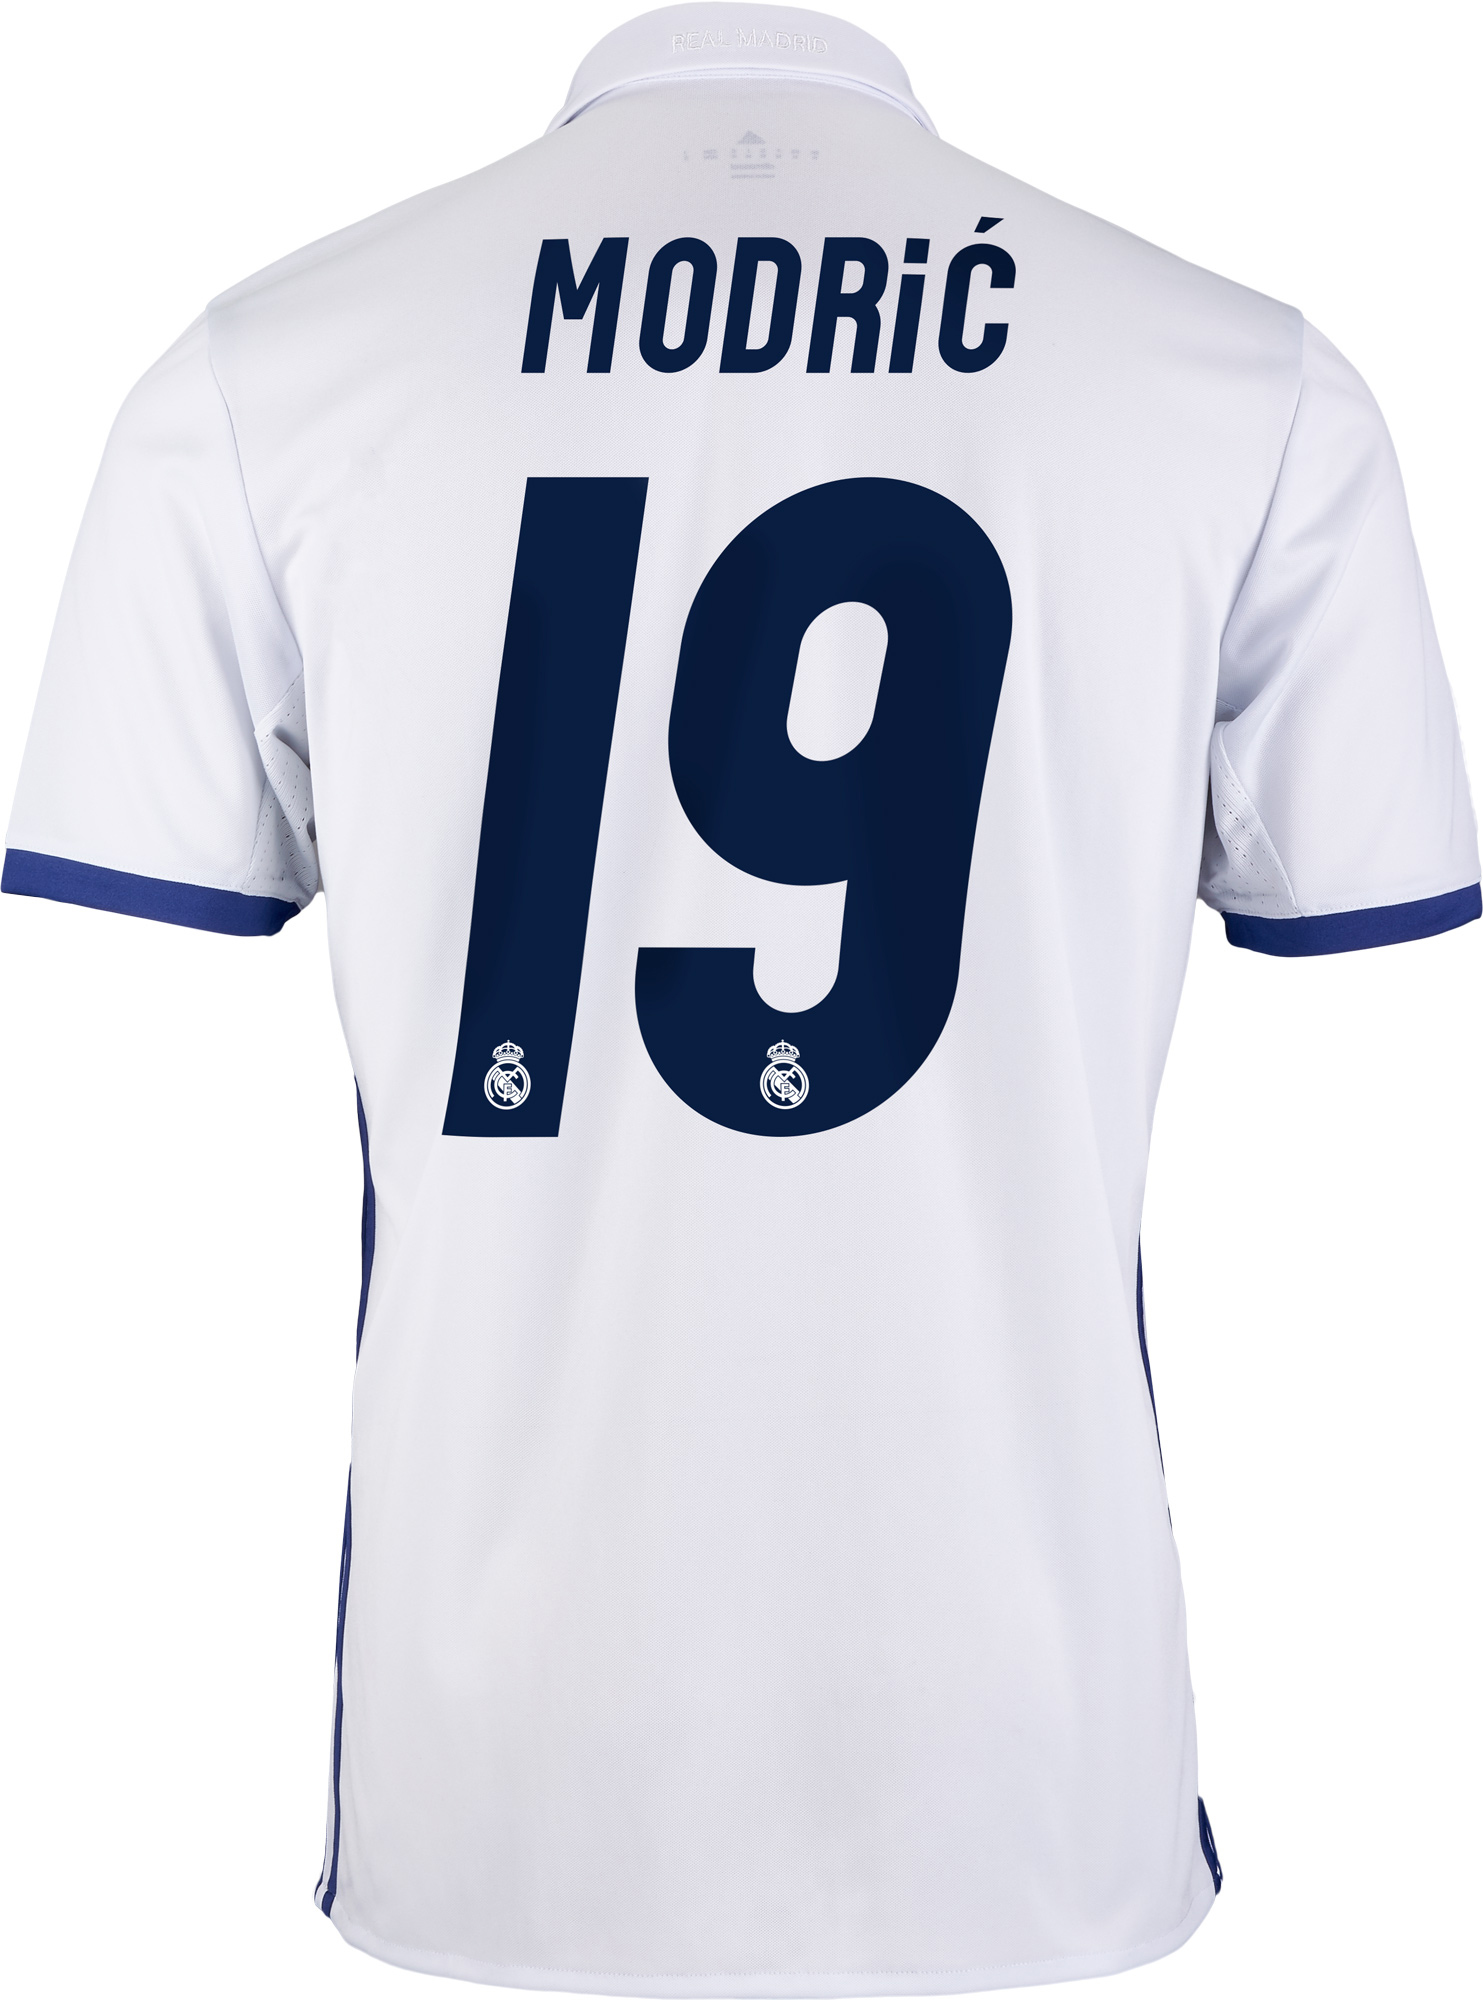 los angeles 577fc 2fb87 Modric Youth Real Madrid Jersey - 2016-17 Real Madrid Jerseys